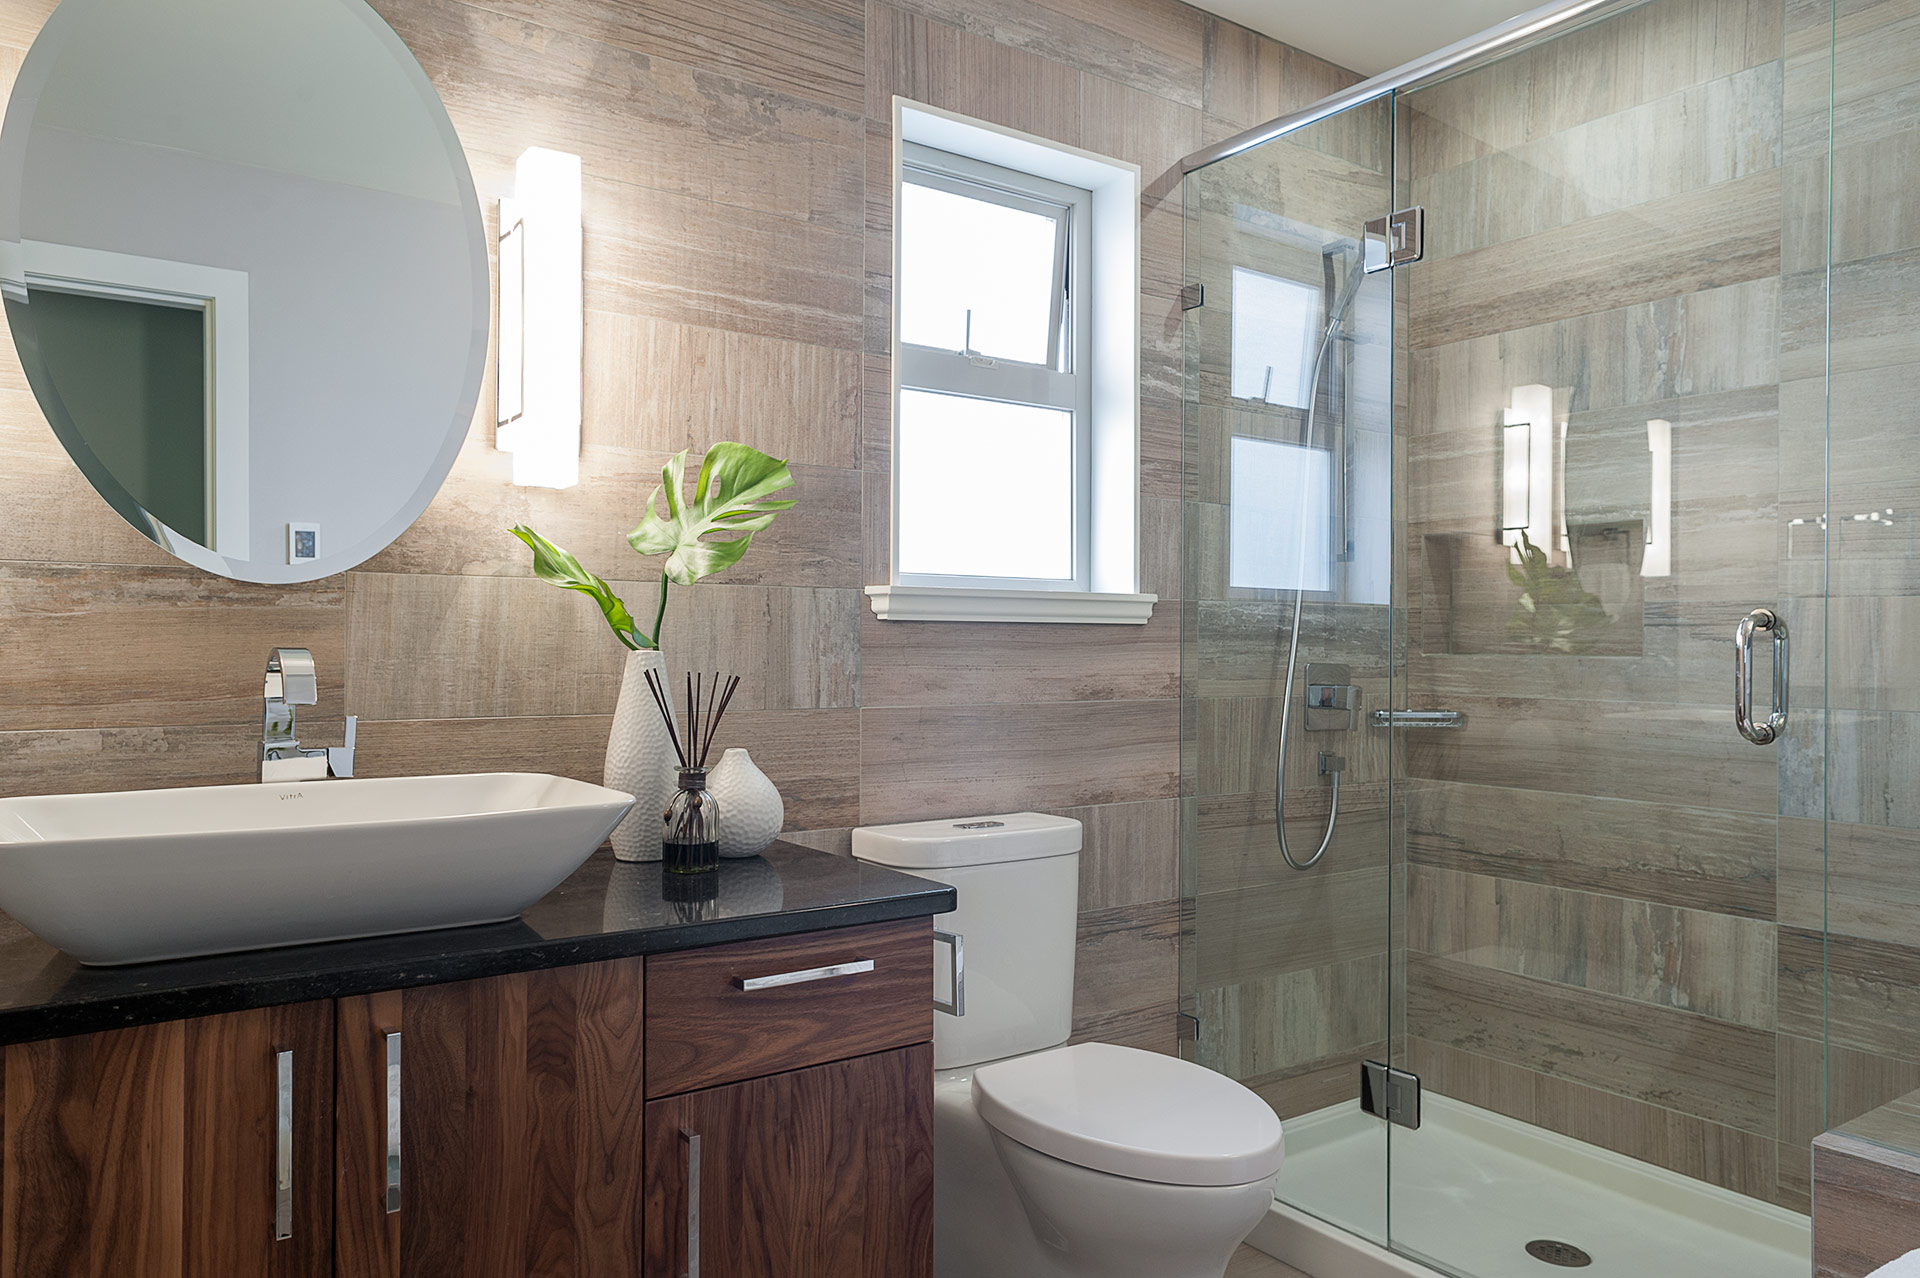 Small bathroom renovation loaded with style modern home for Bathroom ideas 1920s home